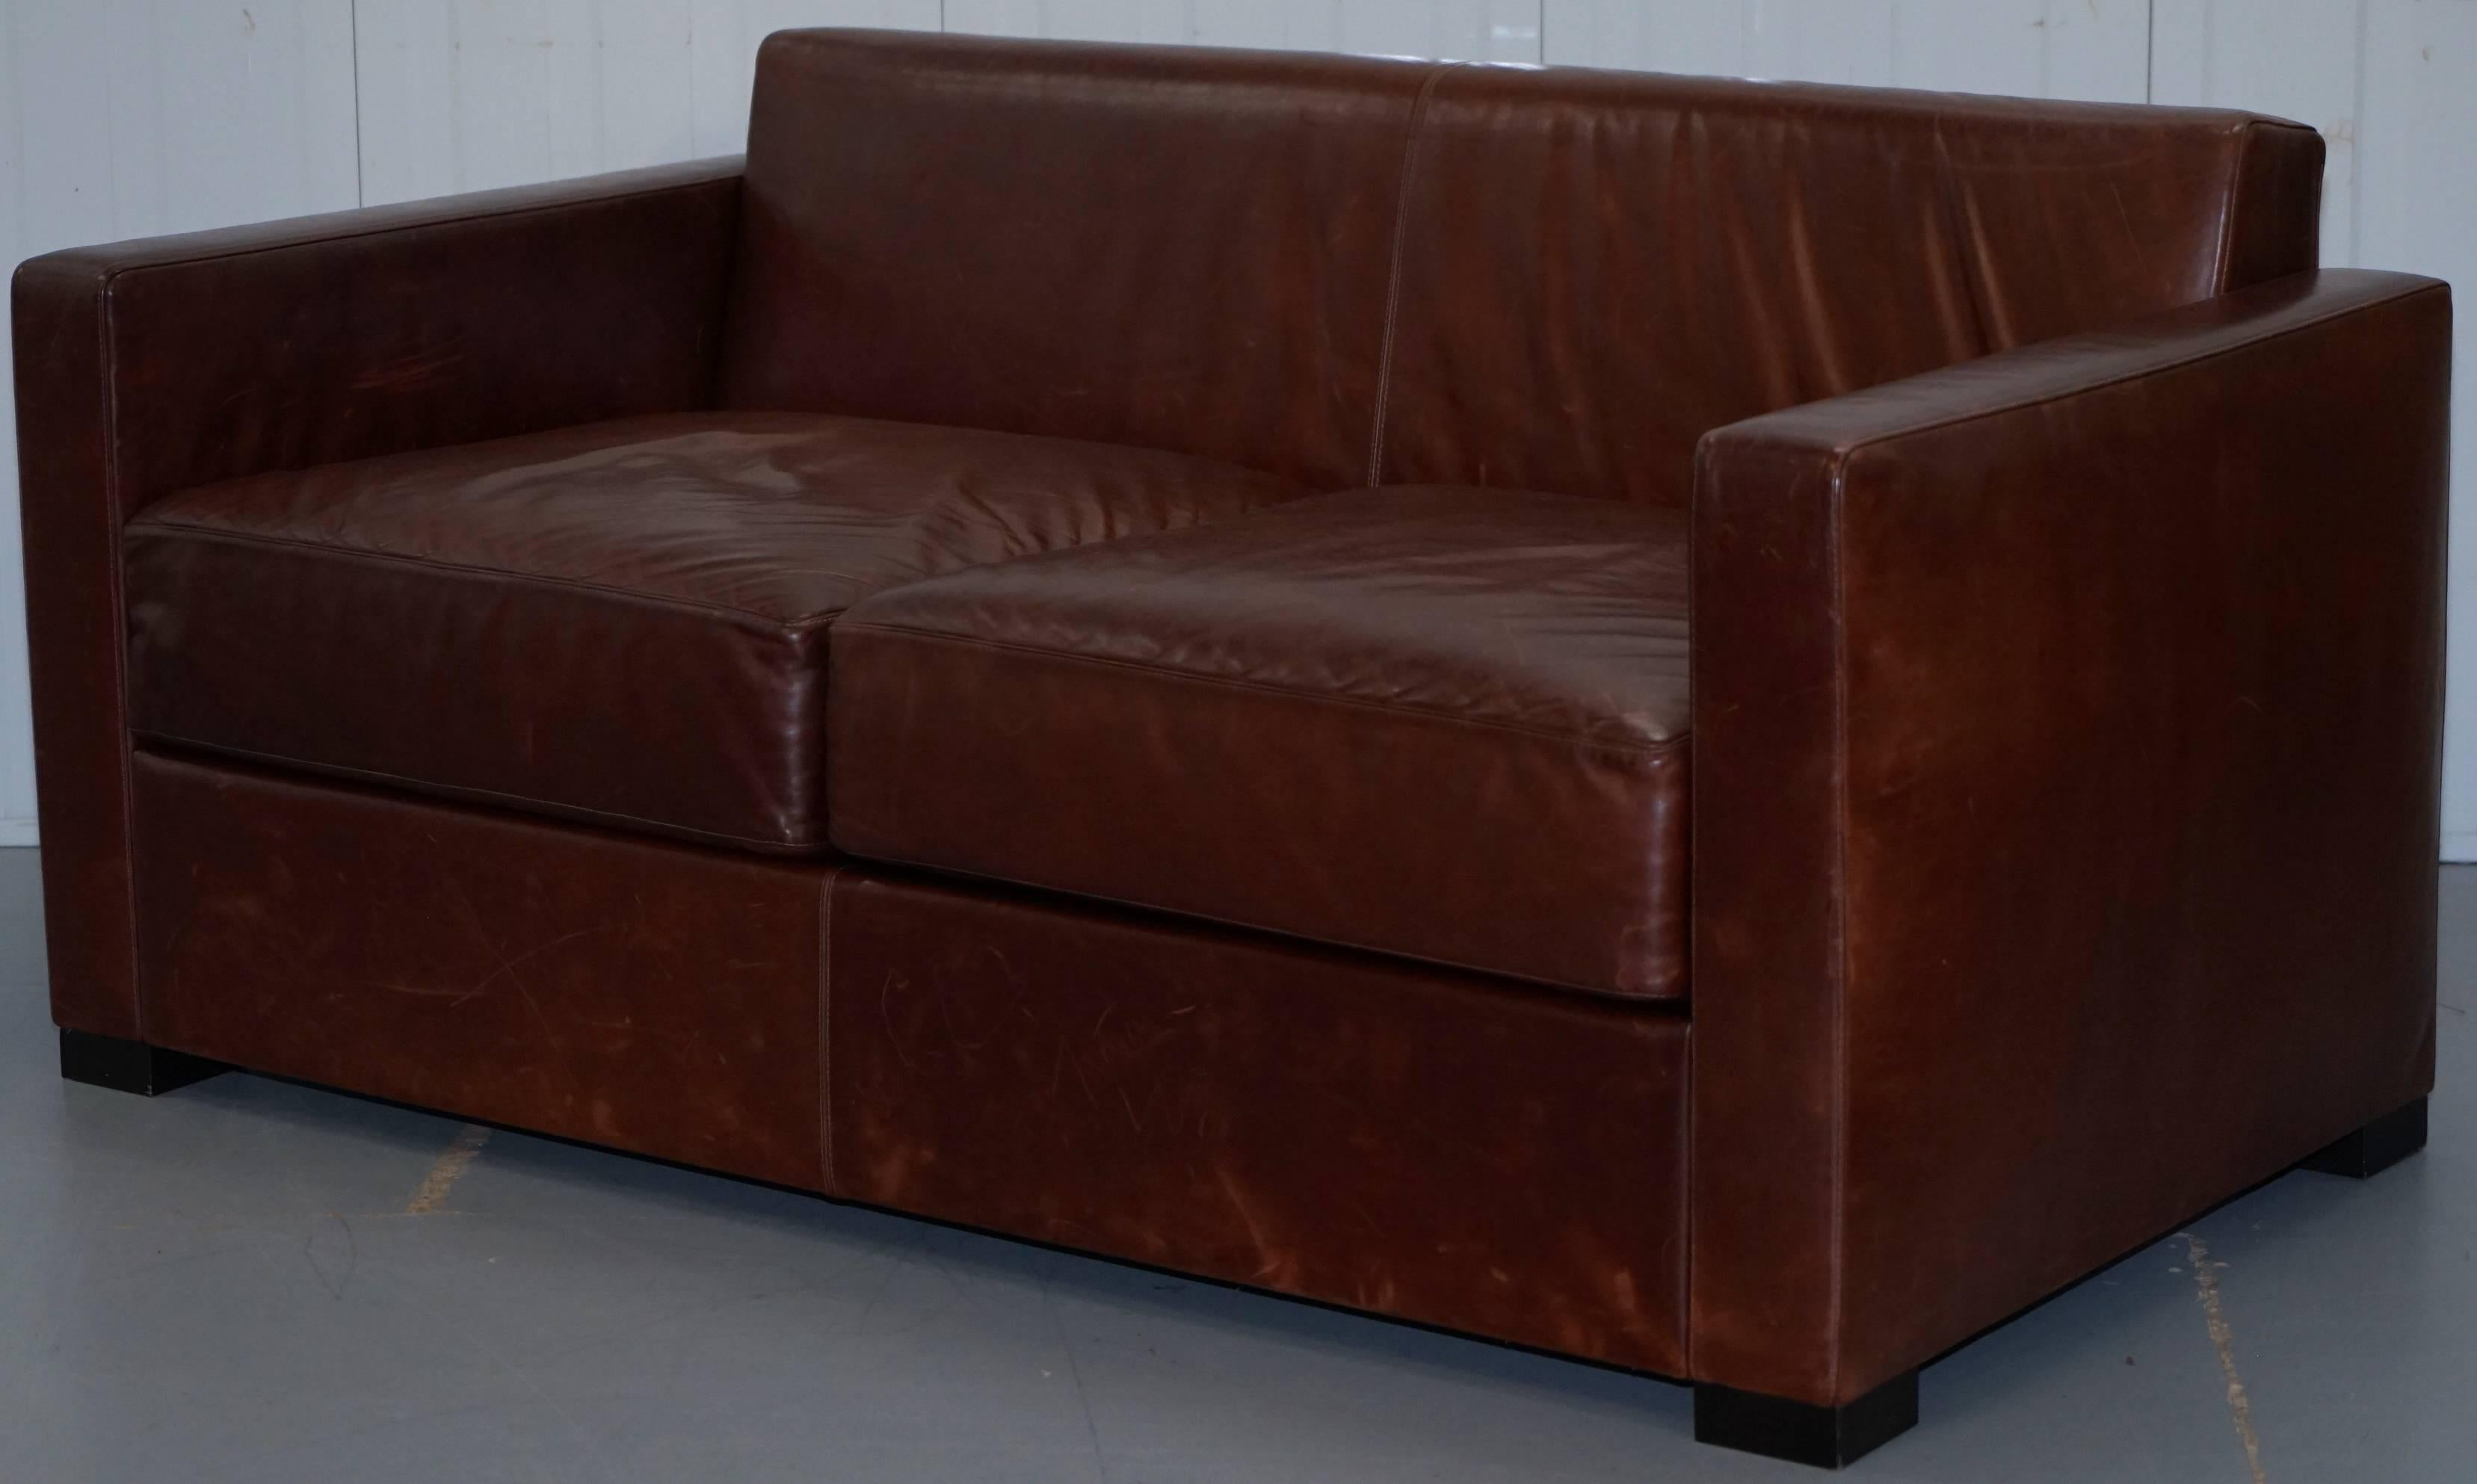 Poltrona Frau Linea A Two Seat Sofa By Peter Marino Brown Heritage Leather  In Distressed